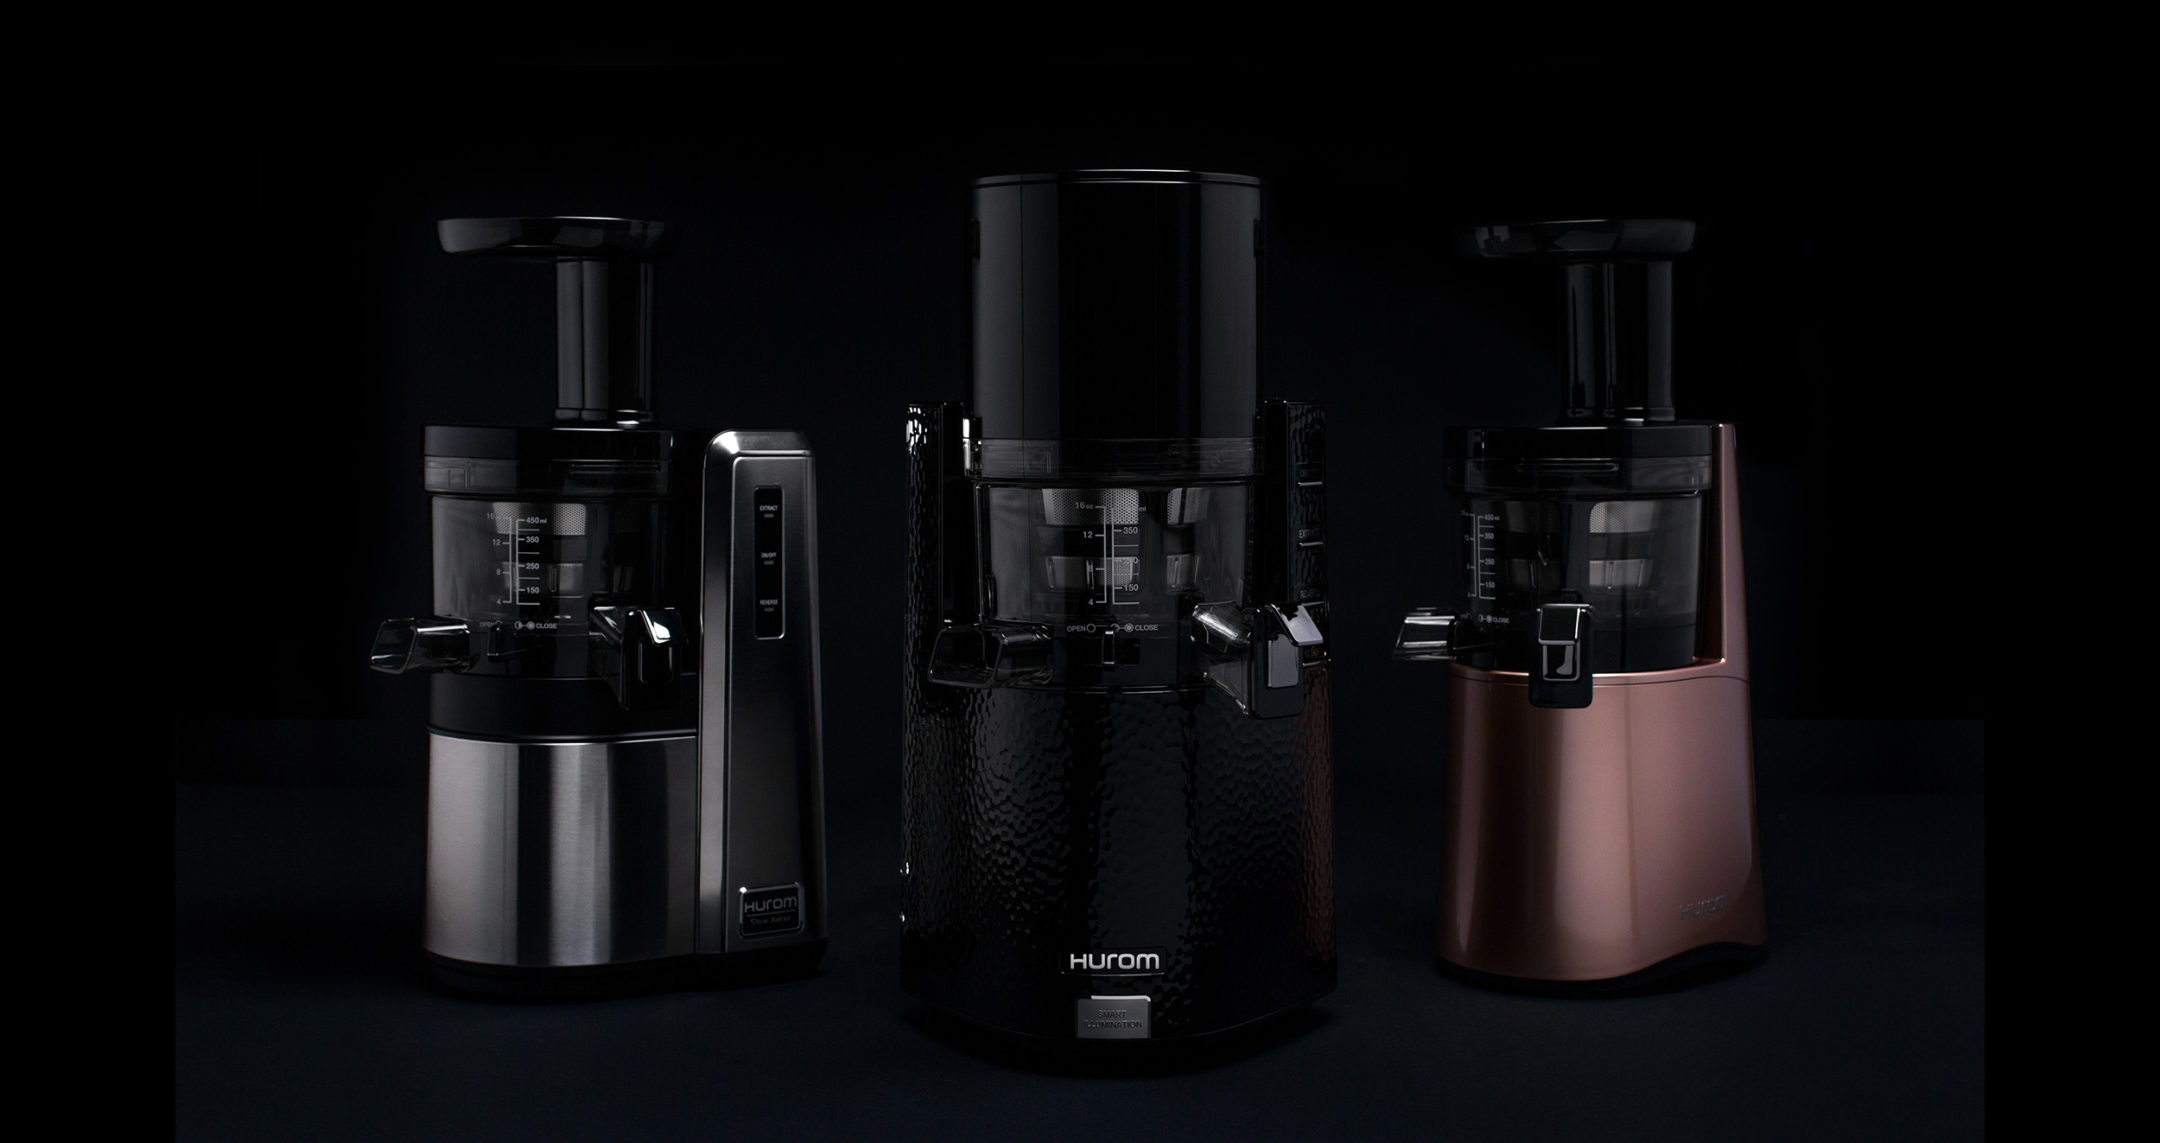 3 hurom juicers shrouded in darkness